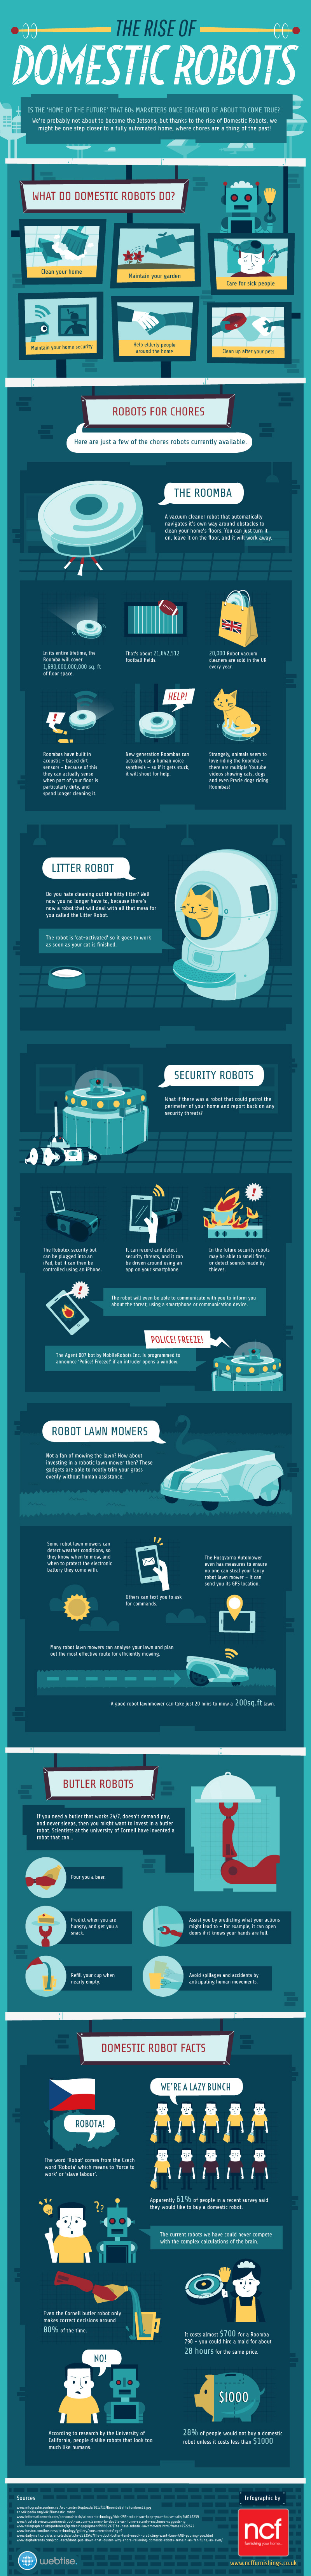 the-rise-of-domestic-robots-infographic